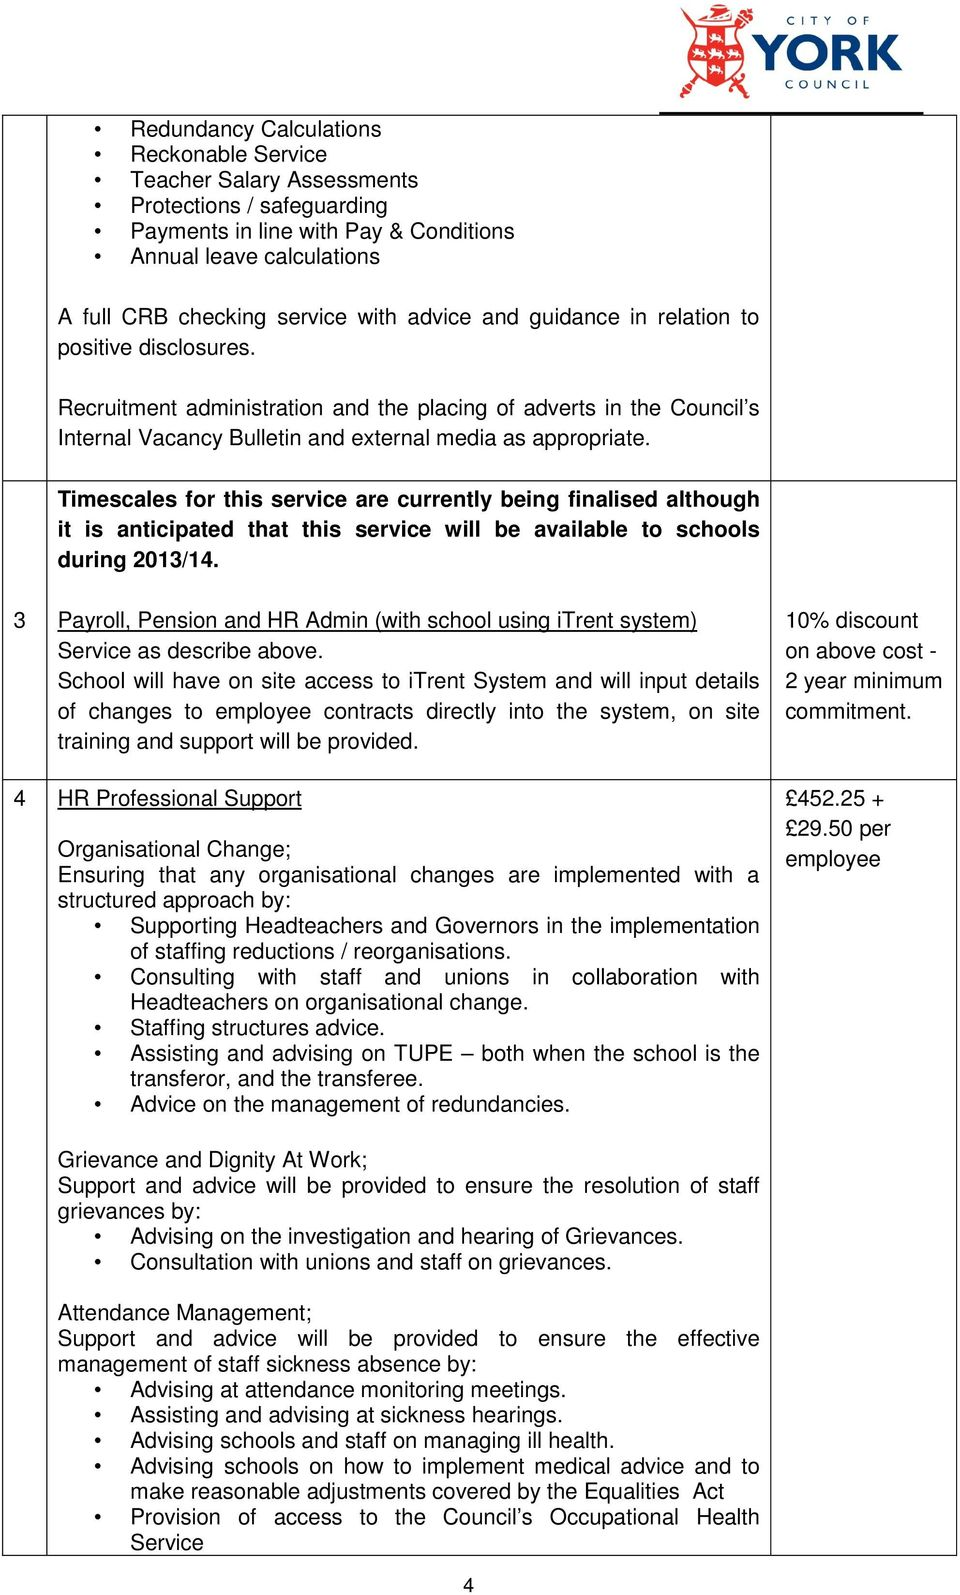 Timescales for this service are currently being finalised although it is anticipated that this service will be available to schools during 2013/14.